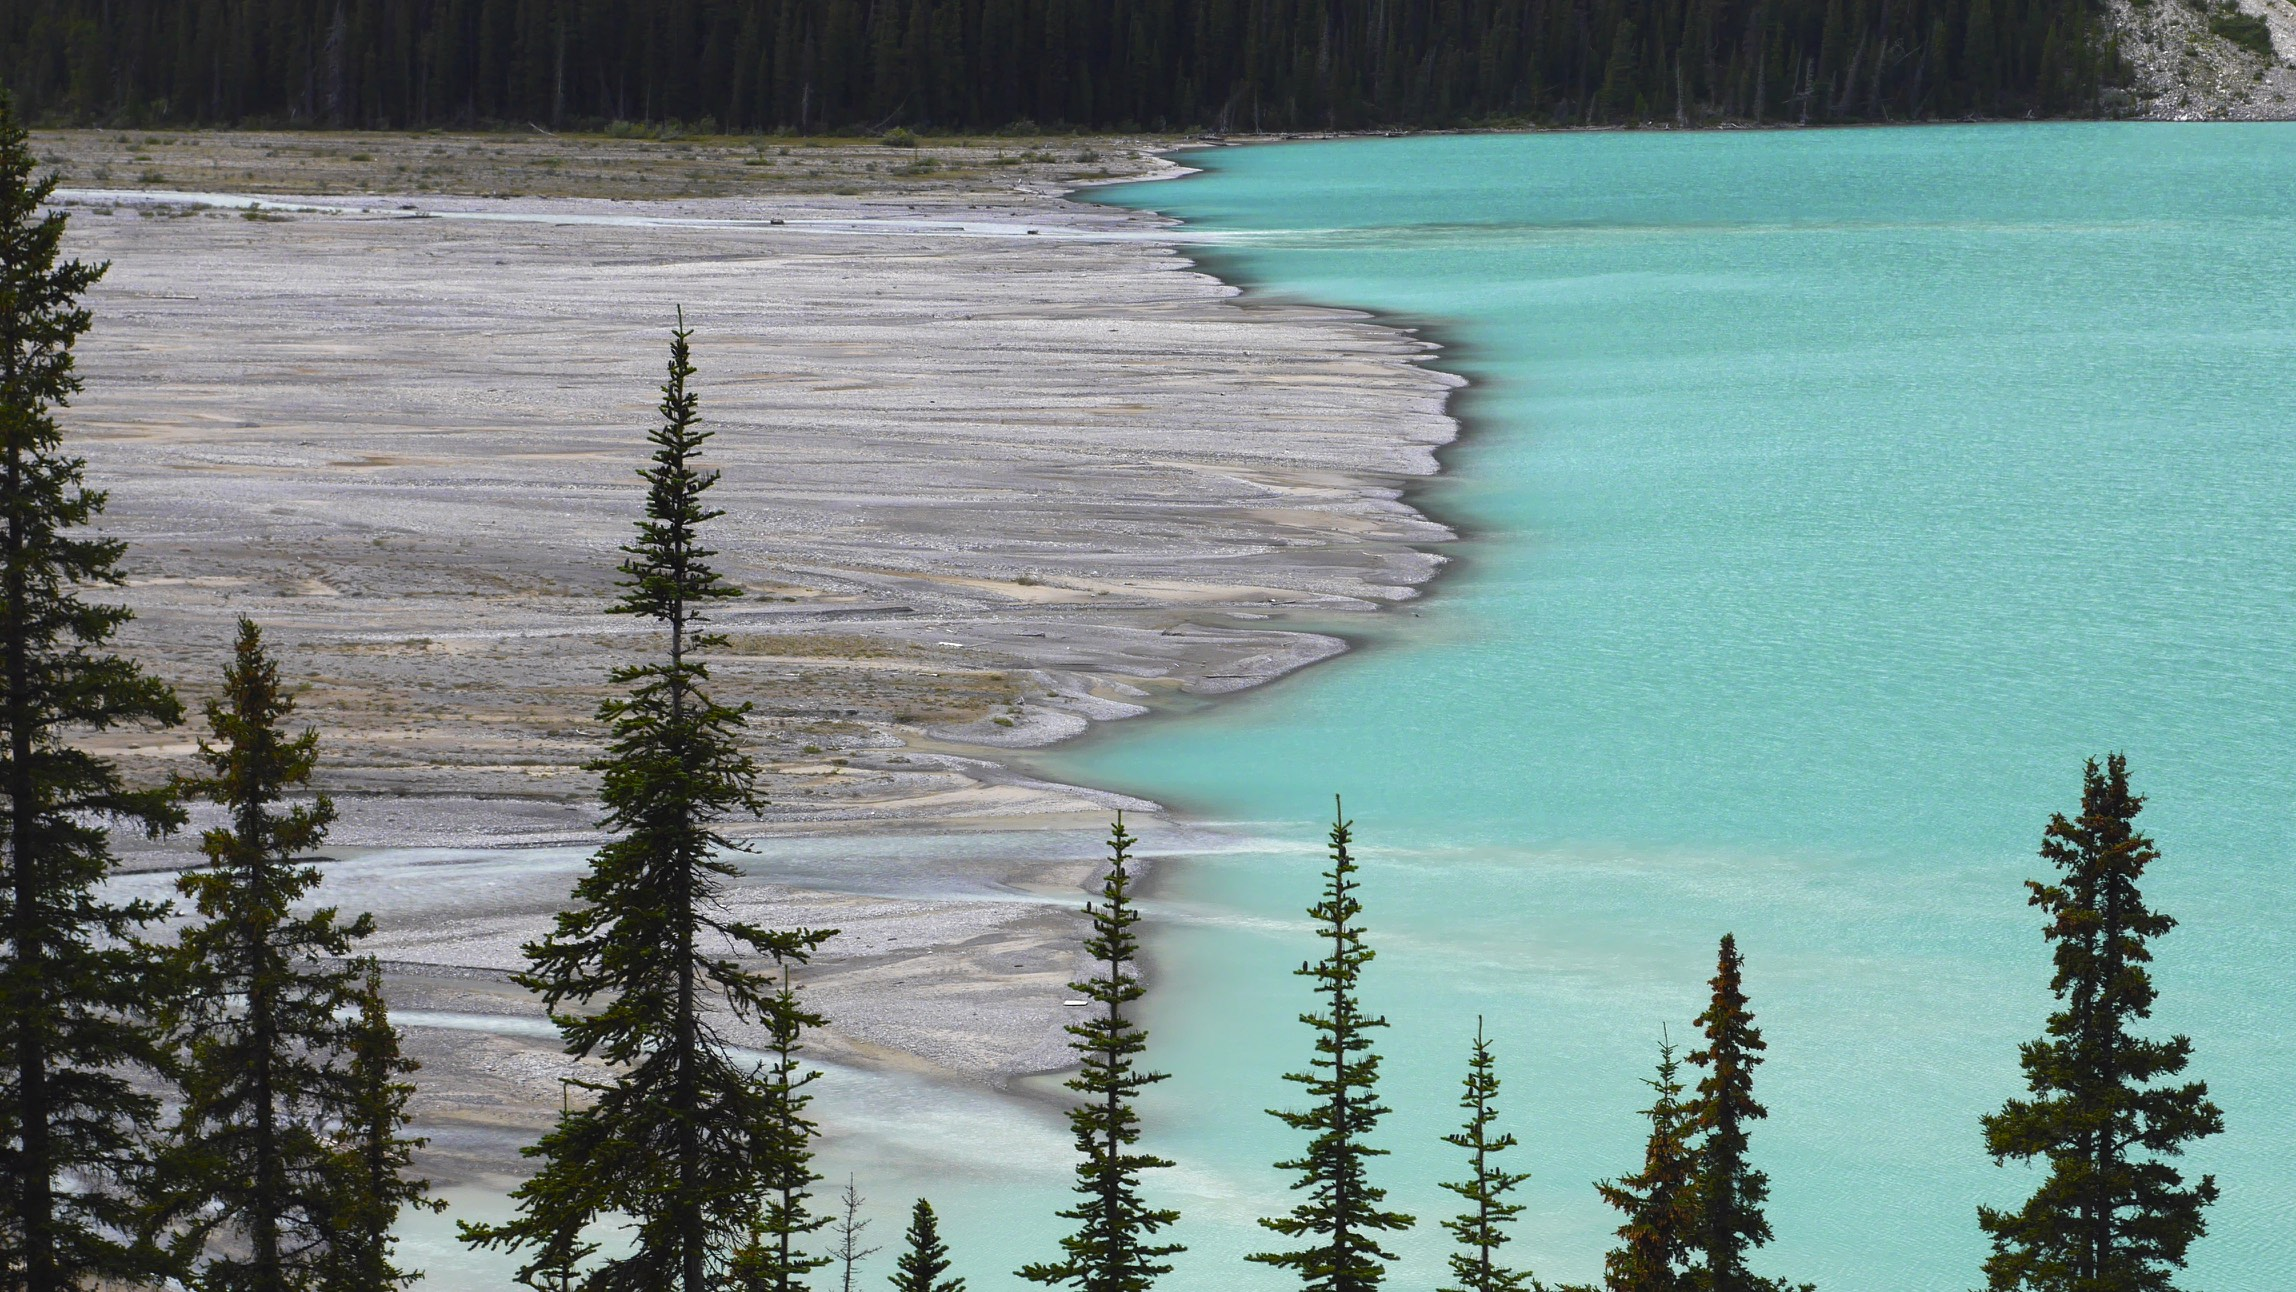 The Peyto Lake